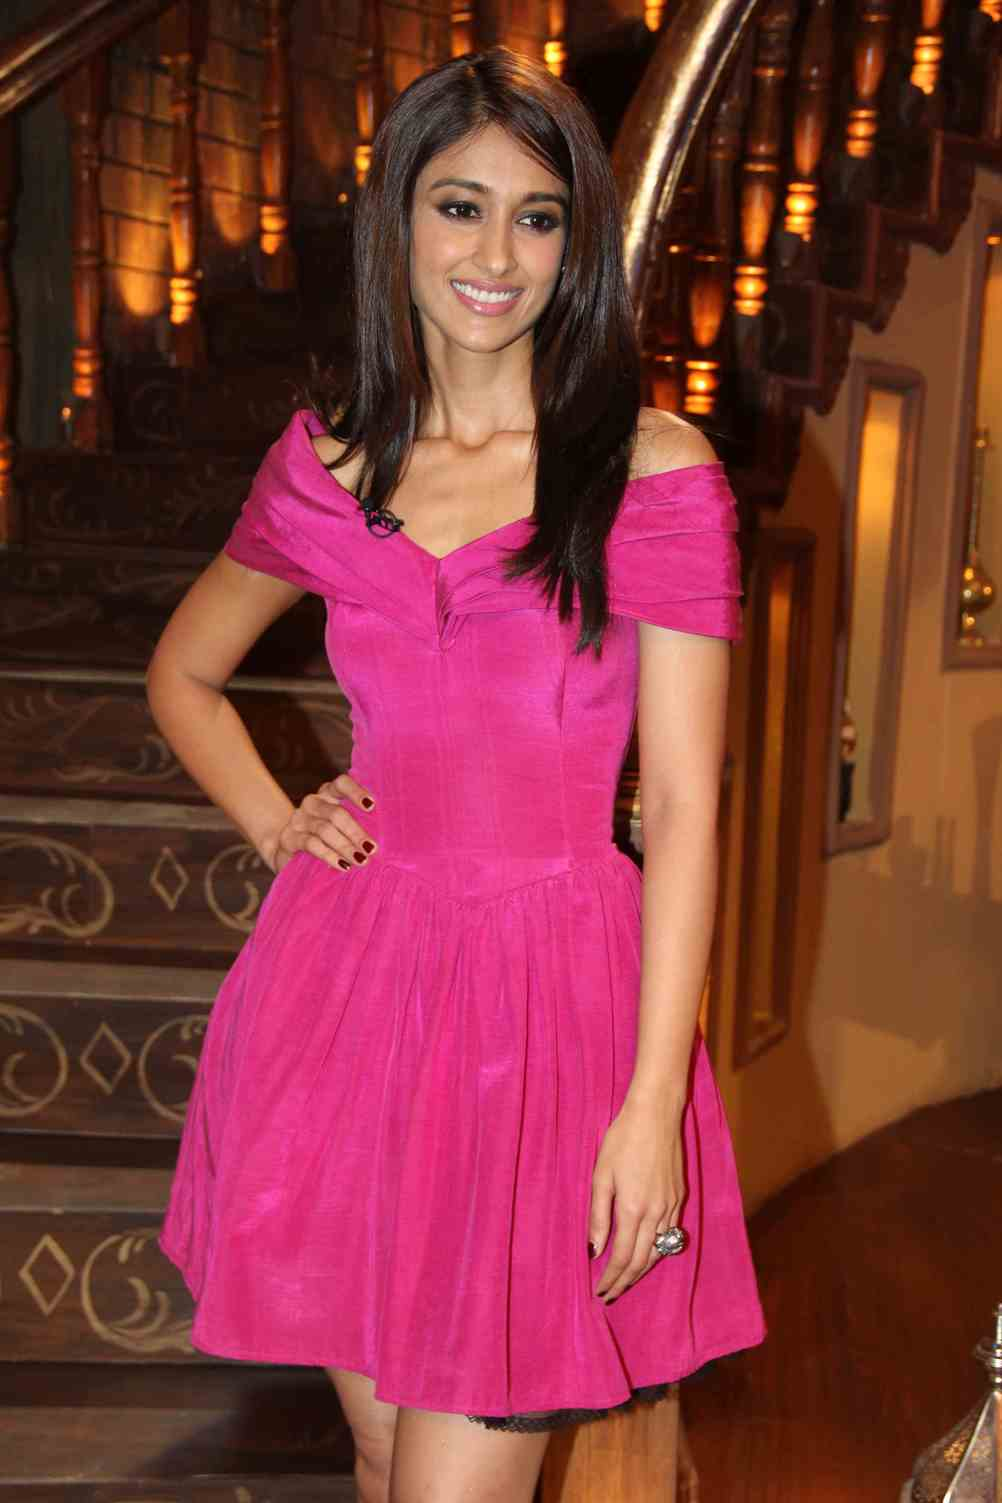 Illeana glamorous photos in pink gown